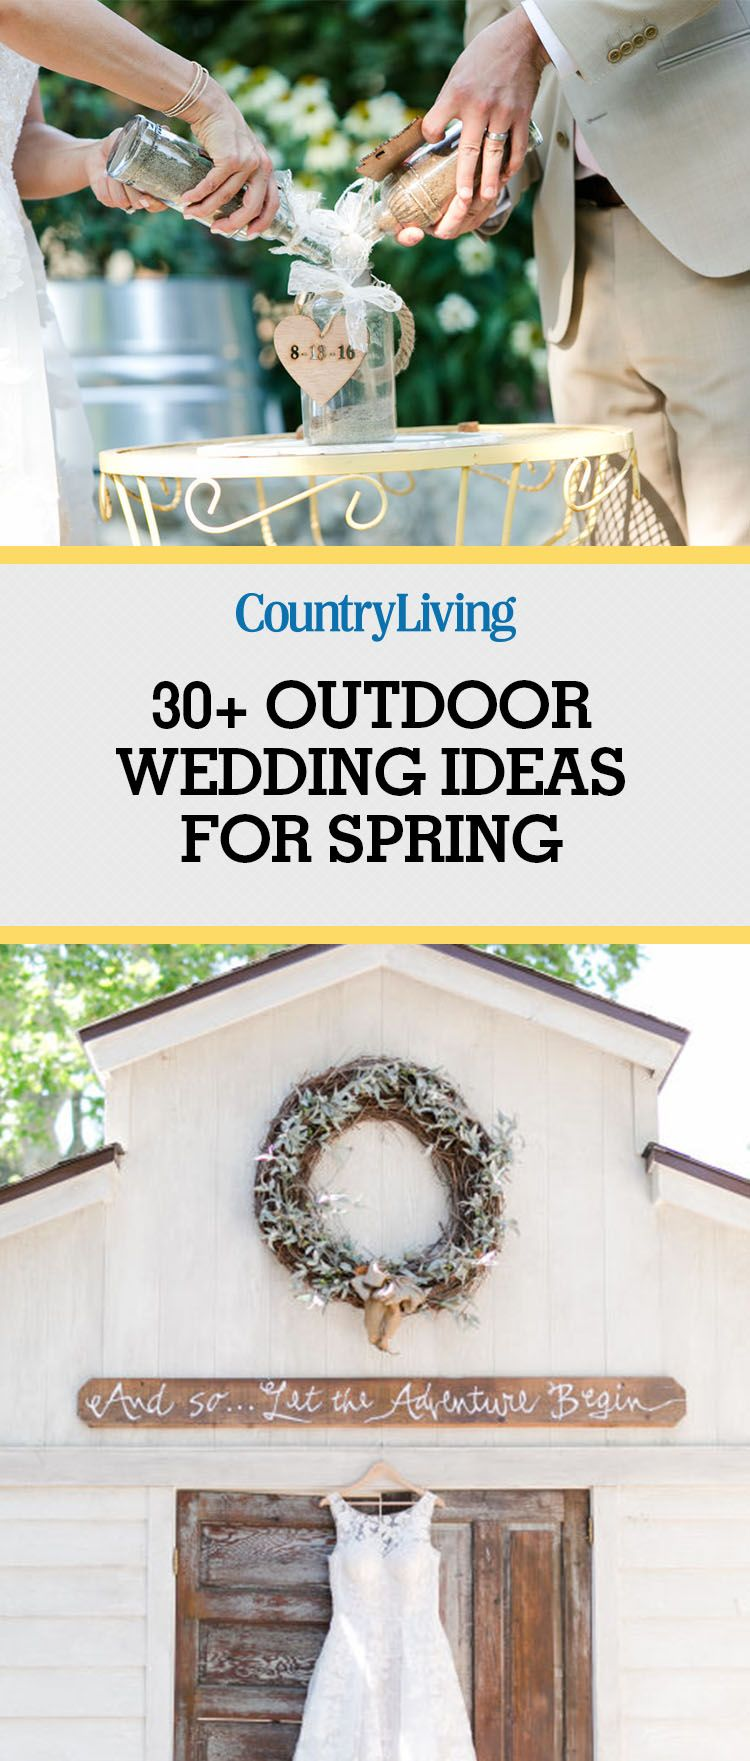 31 Outdoor Wedding Ideas - Decorations for a Fun Outside Spring ...